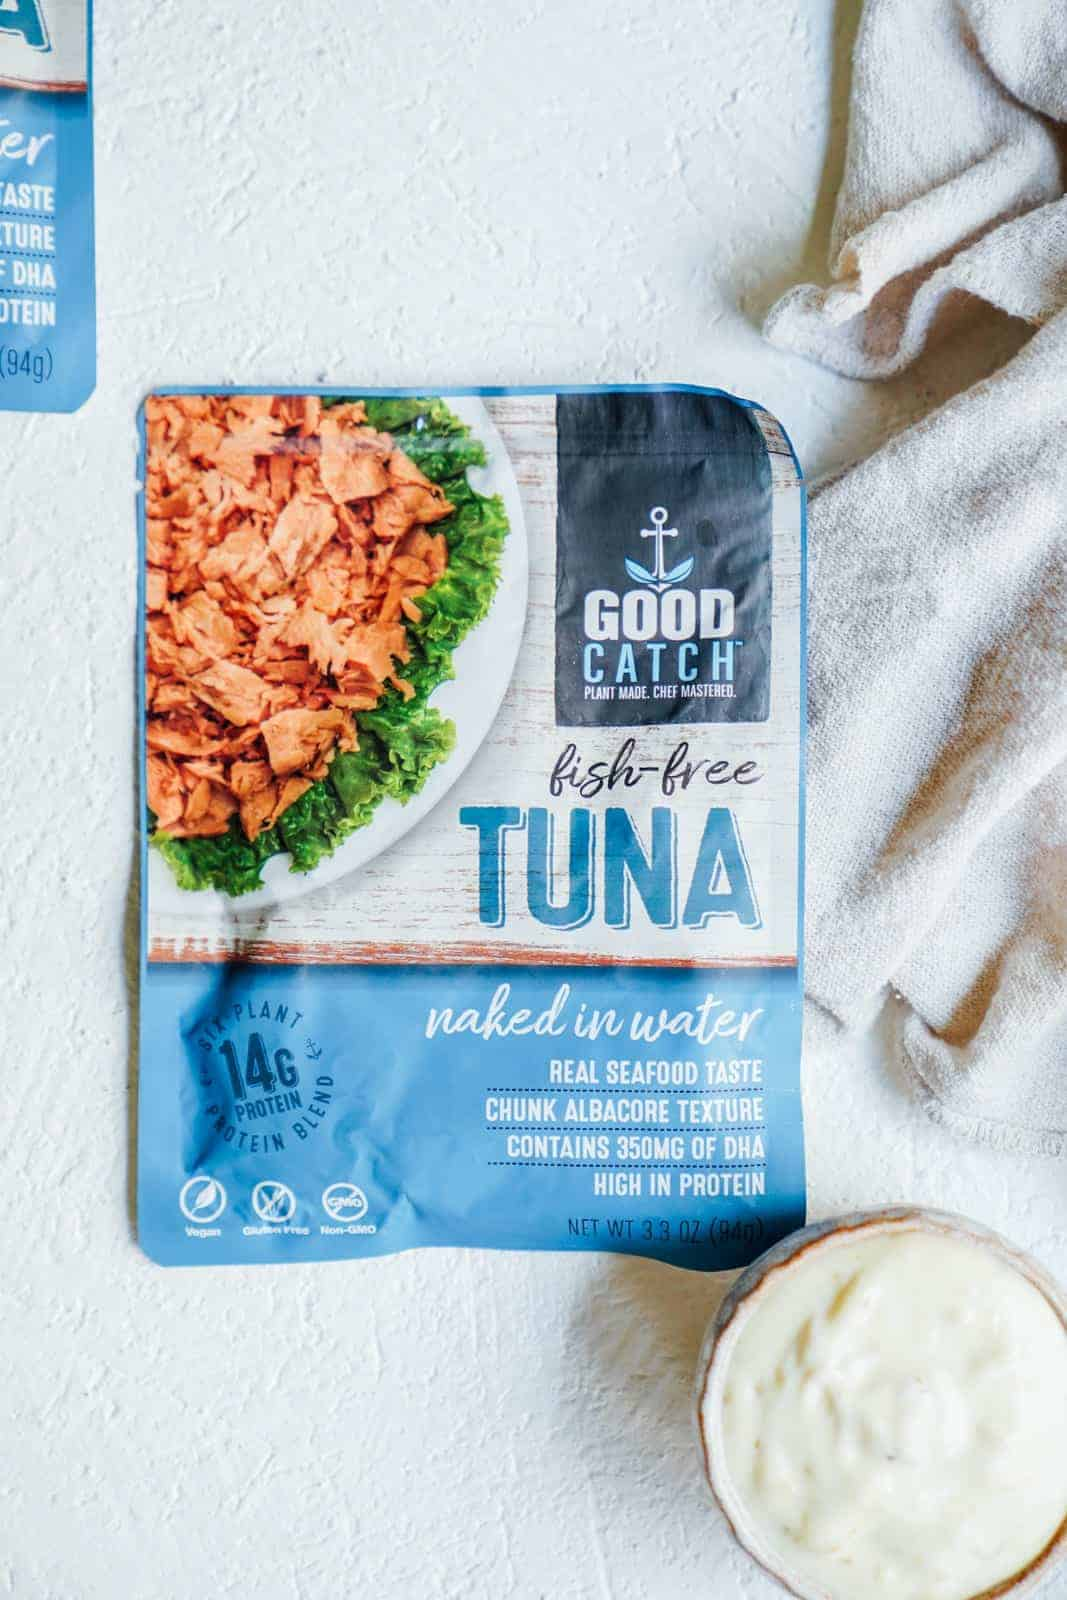 This quick and easy tuna salad recipe is vegan friendly and will not only save you time, but also save the ocean. Perfect for a hot summer day or meal prep!